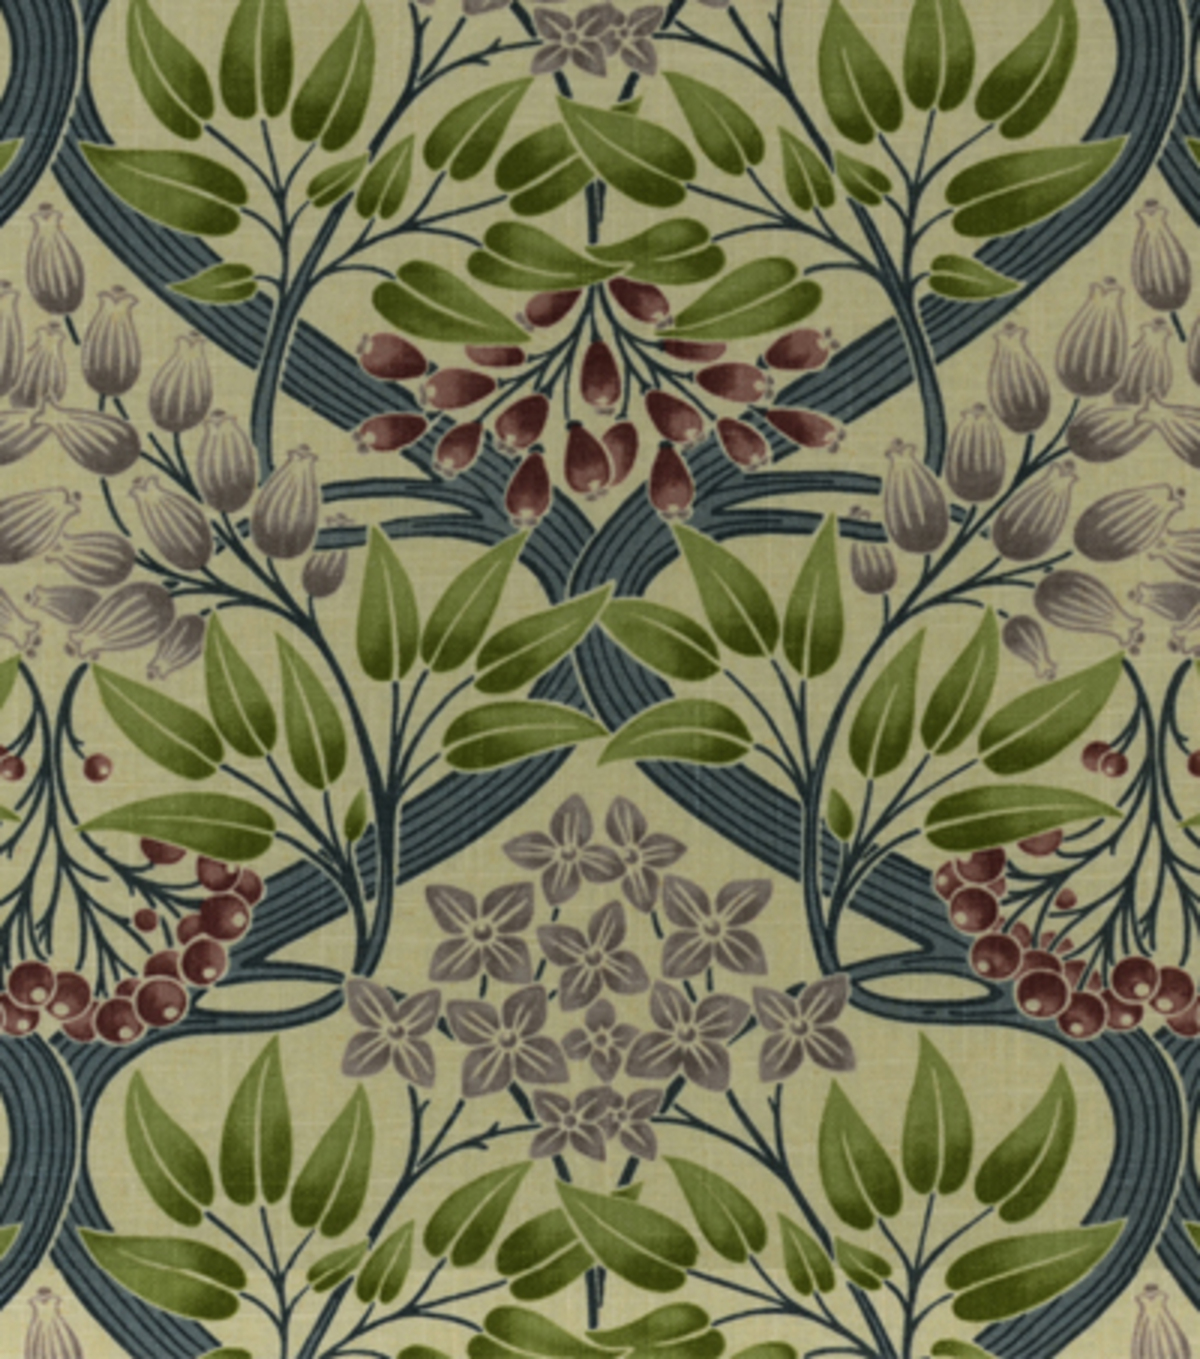 Home Decor 8\u0022x8\u0022 Fabric Swatch-Covington Tiffany 477 Orchid